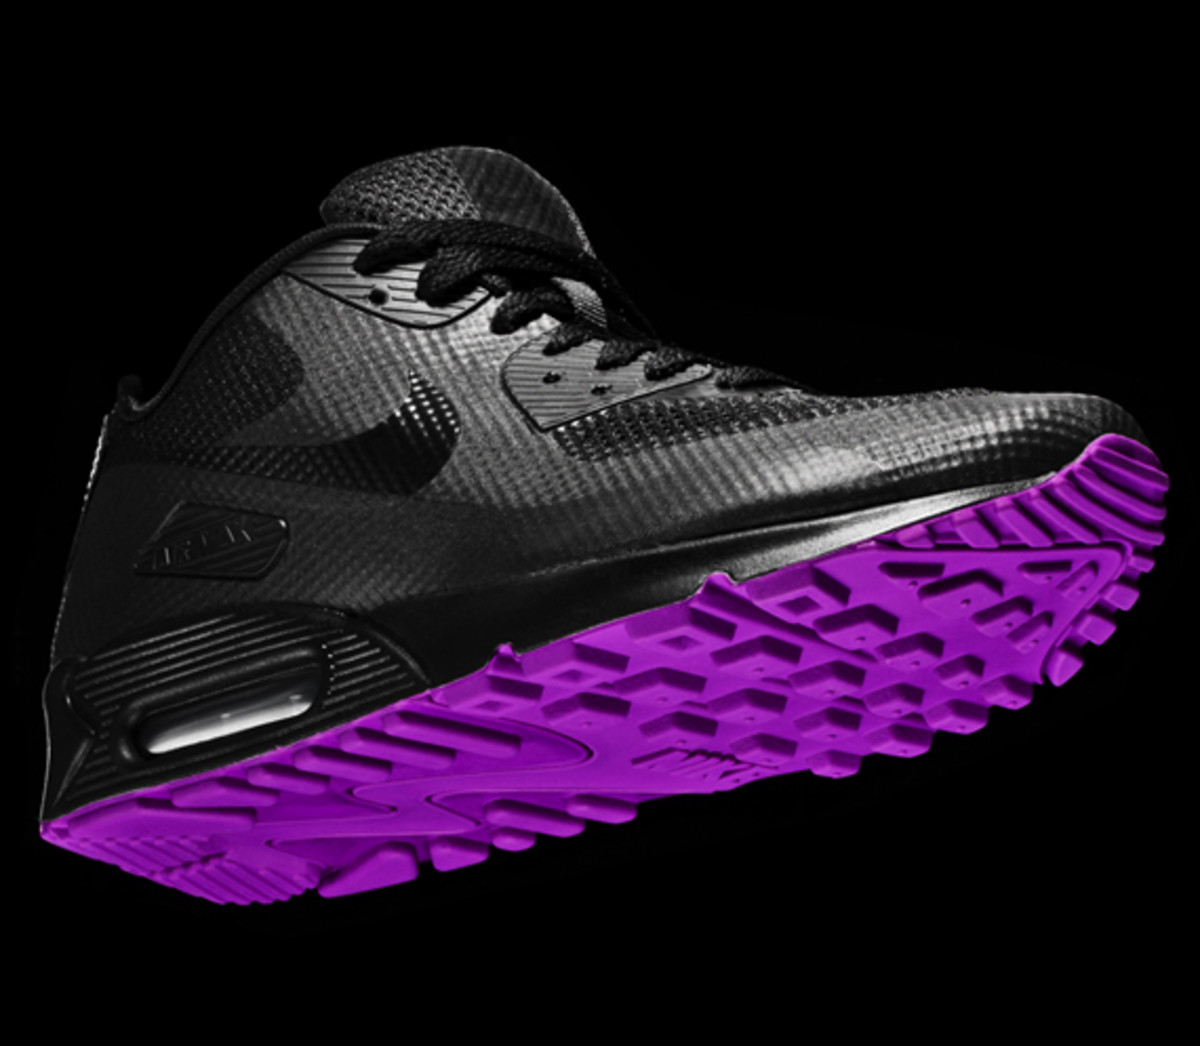 nike-sportswear-hyperfuse-air-max-90-01